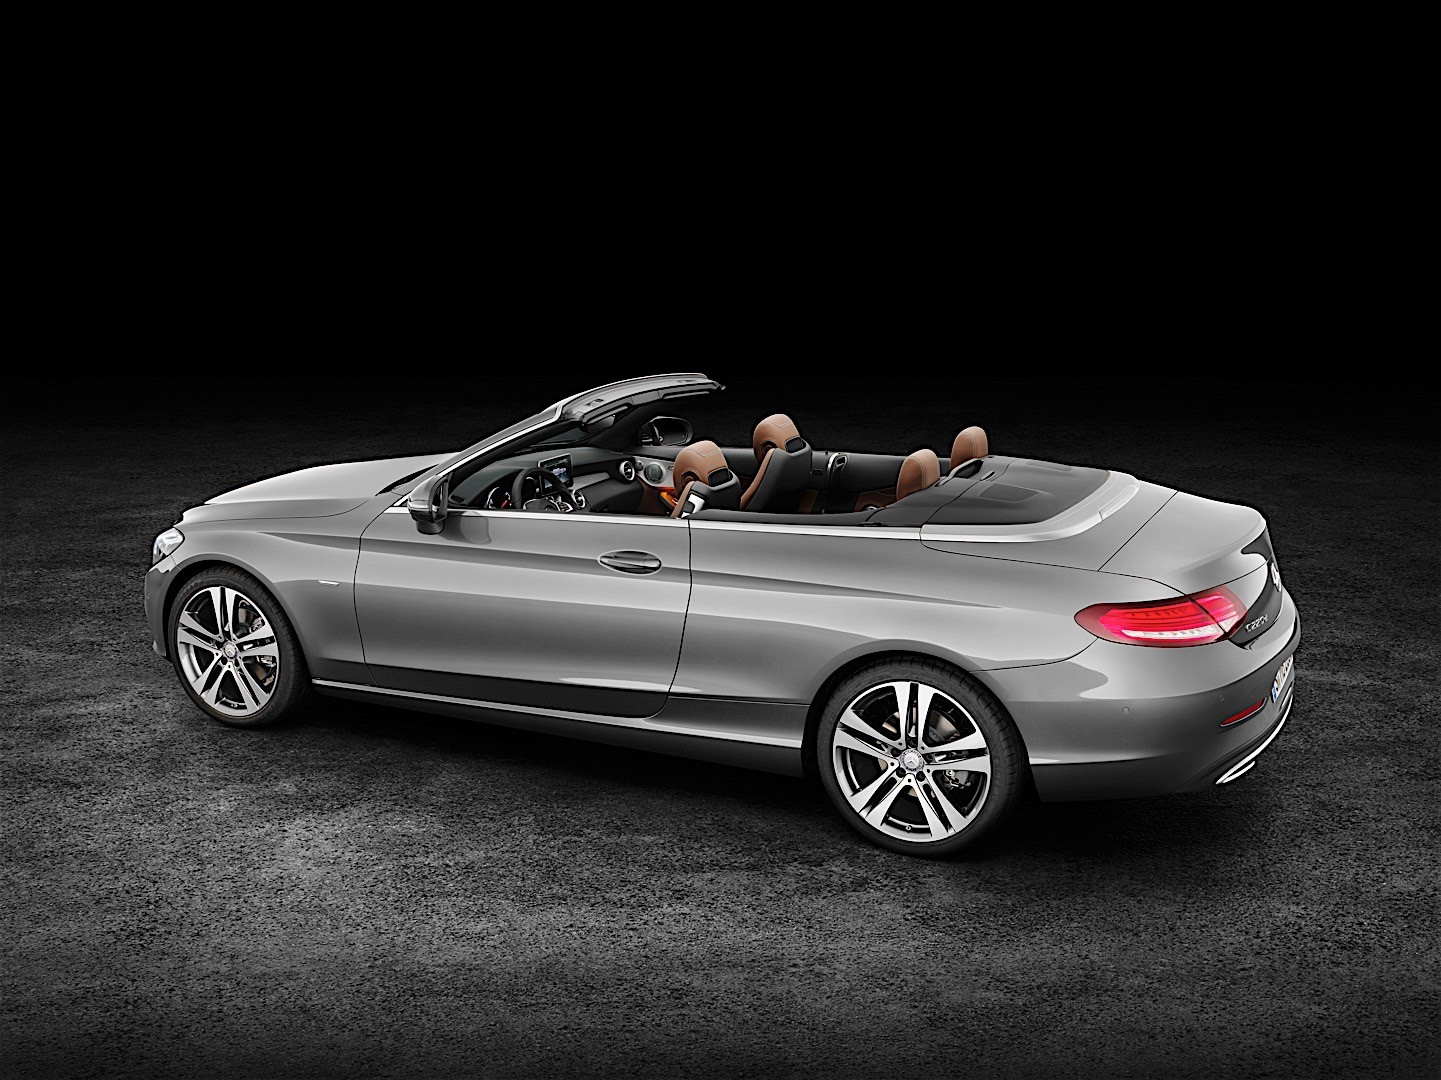 Mercedes benz c class cabriolet a205 specs 2016 2017 for Mercedes benz c300 horsepower